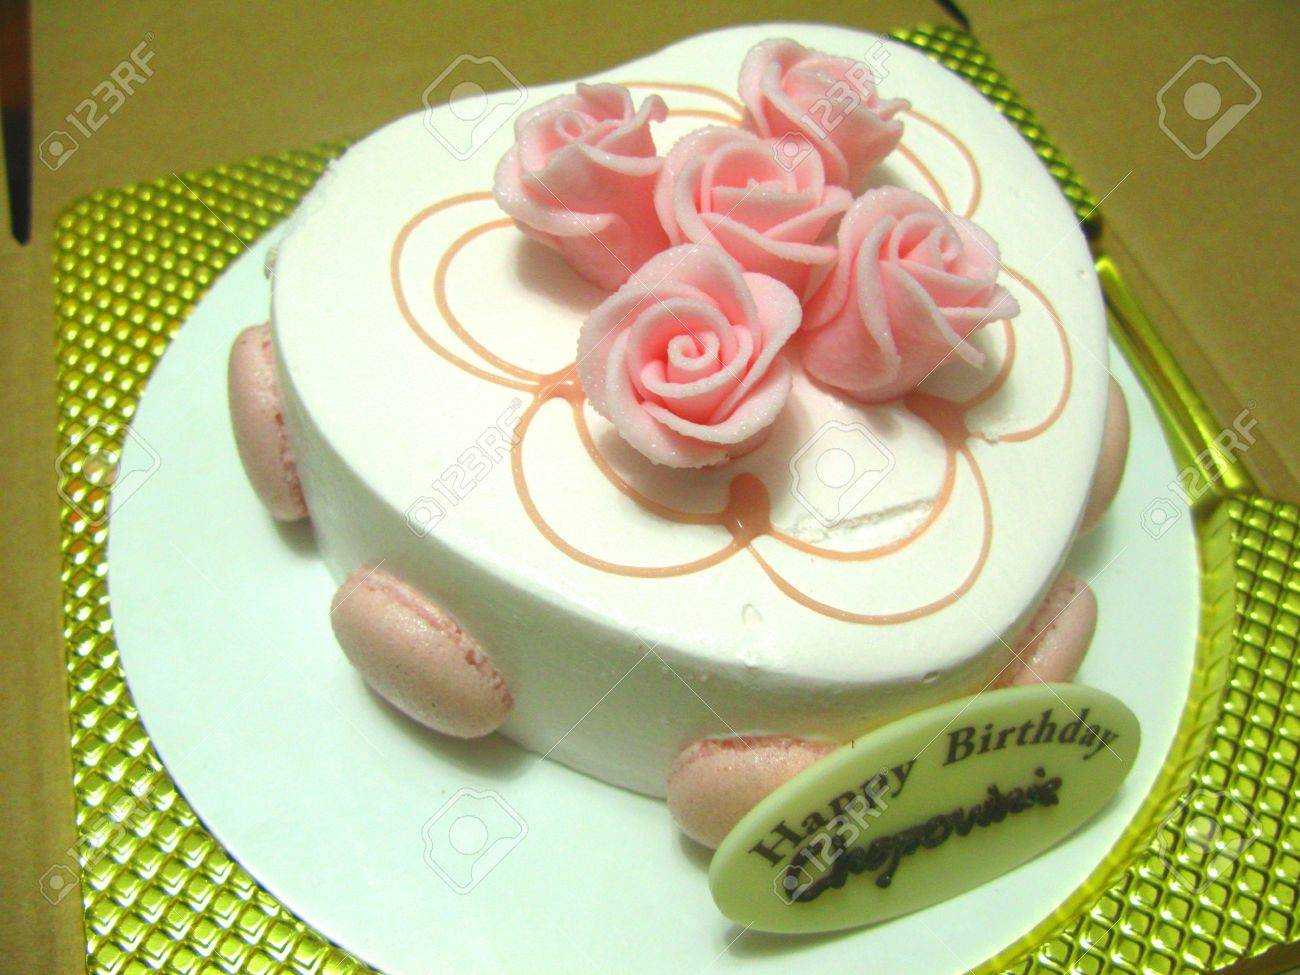 Heart Shaped Birthday Cake Topped With Rose Decoration Stock Photo